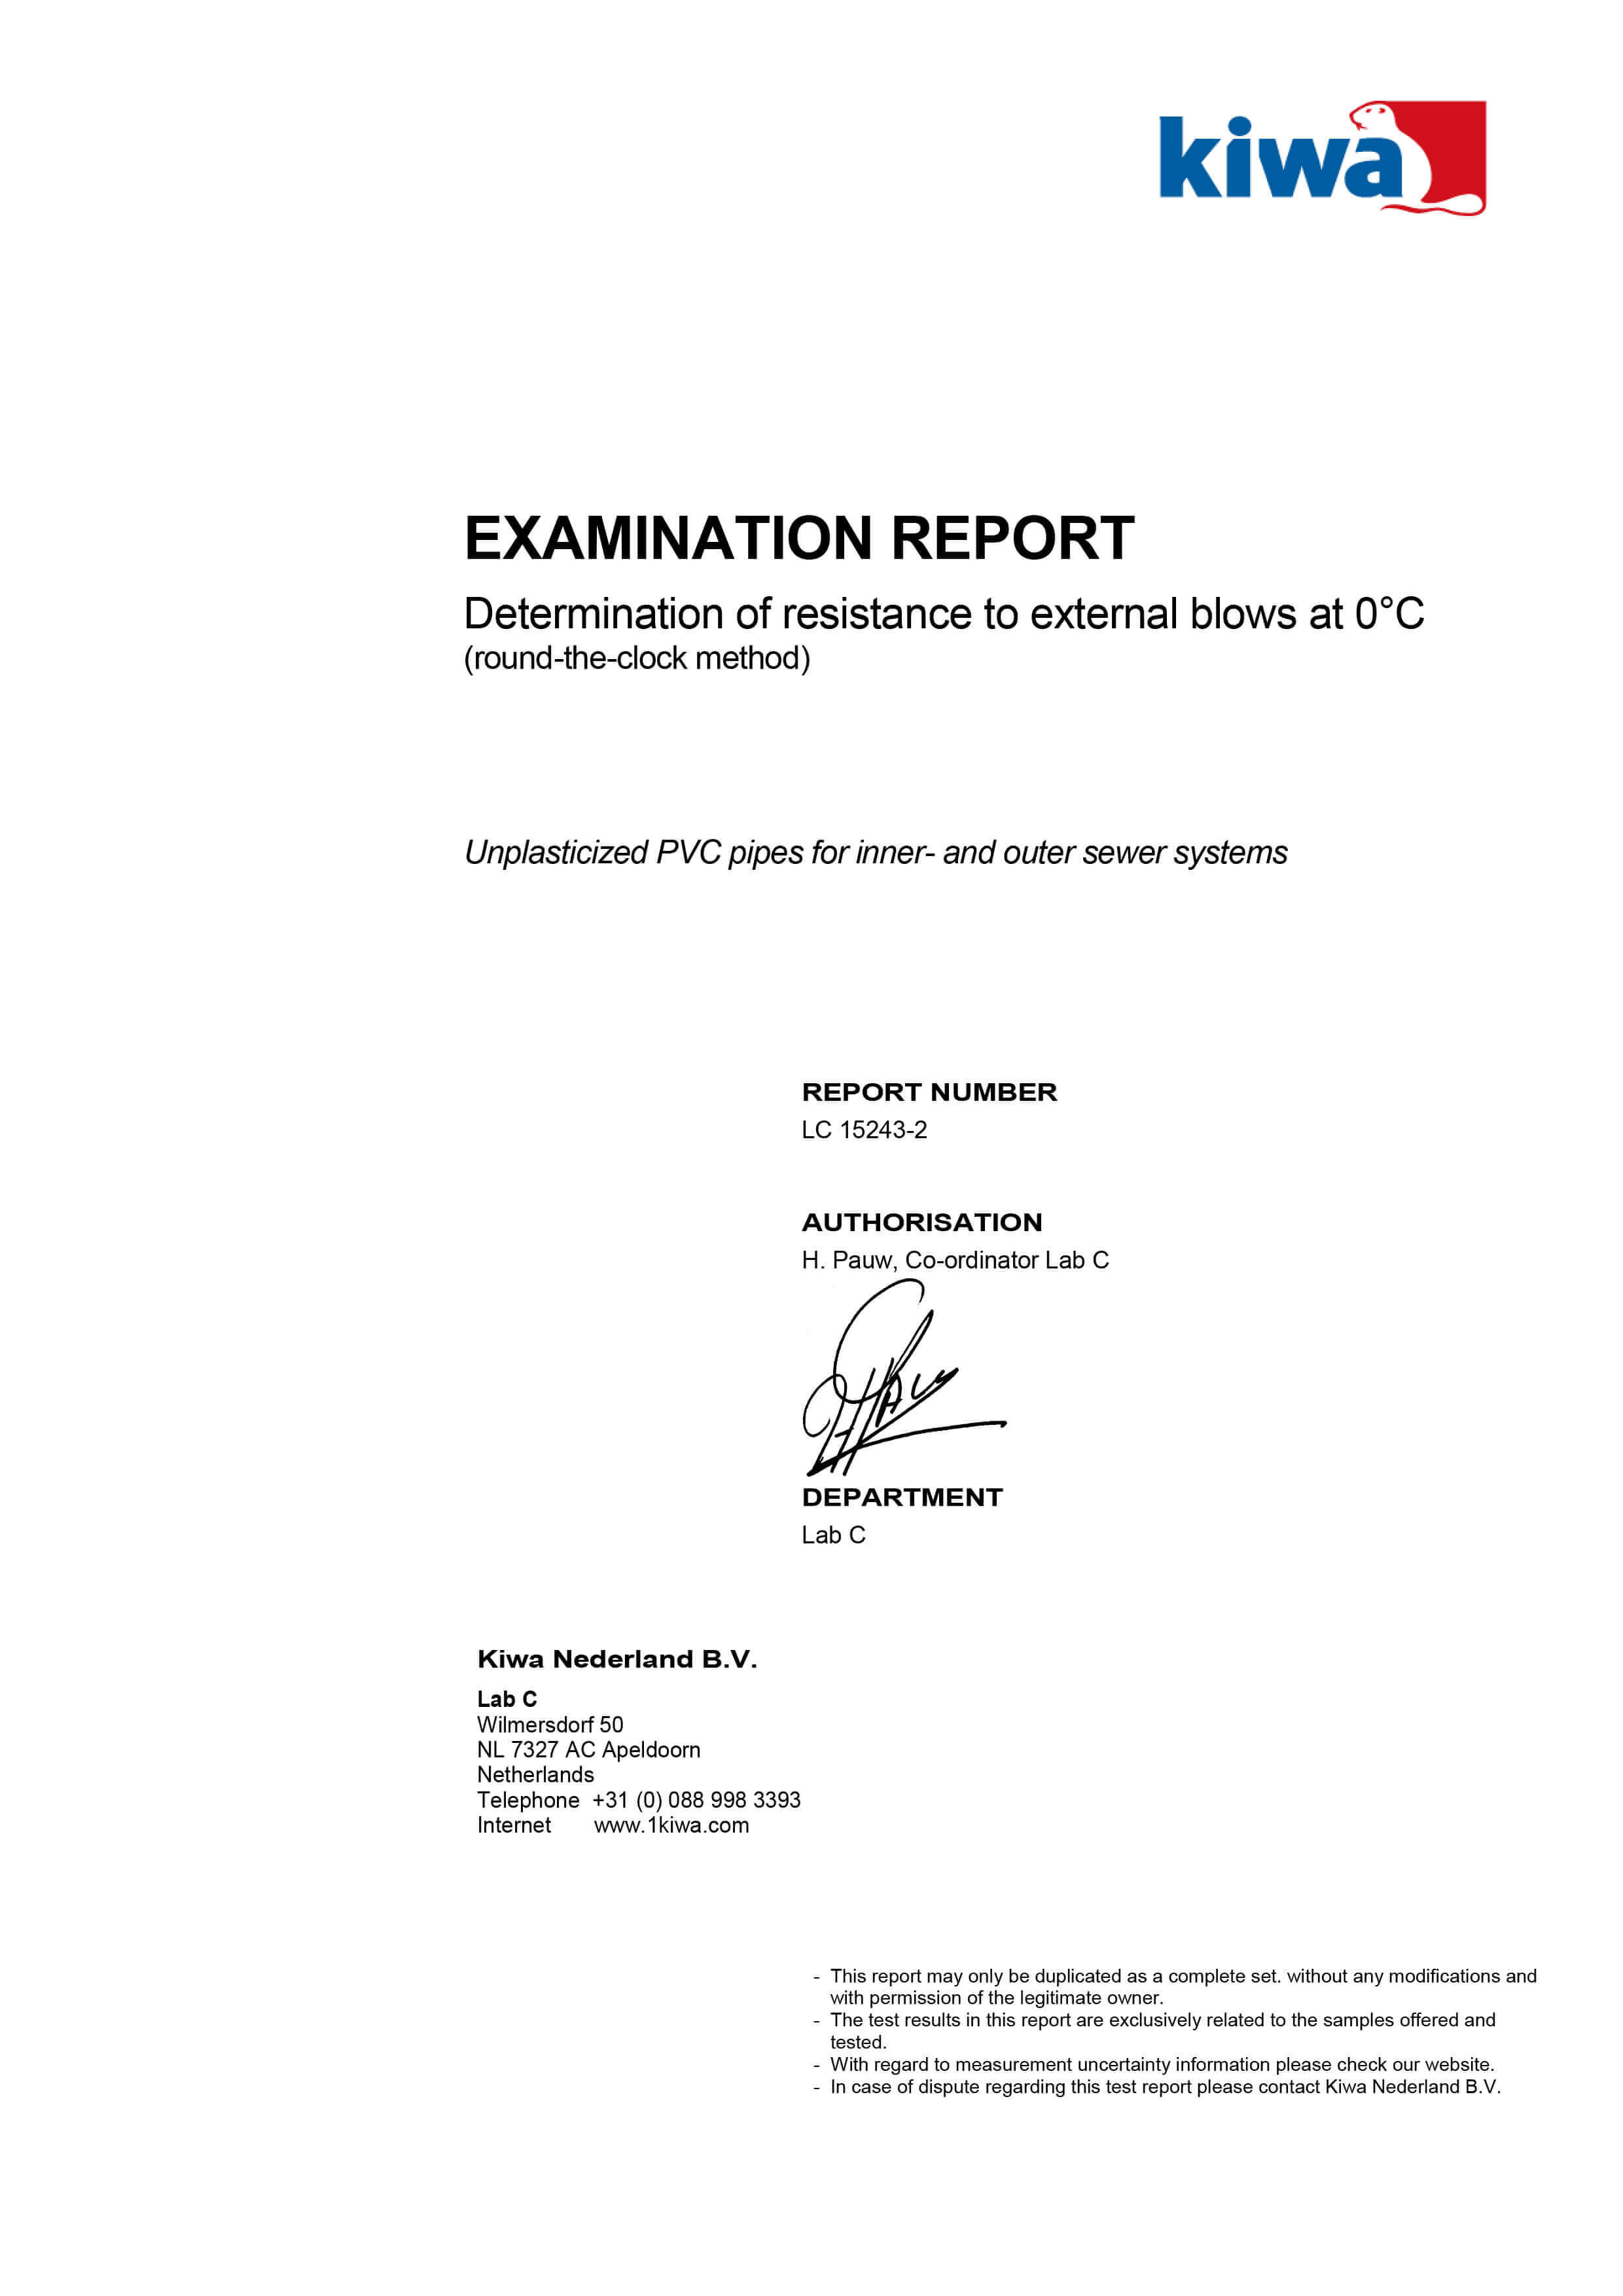 Haykal Plast Examination Report - Determination of resistance to external blows at 0 degrees C - 2